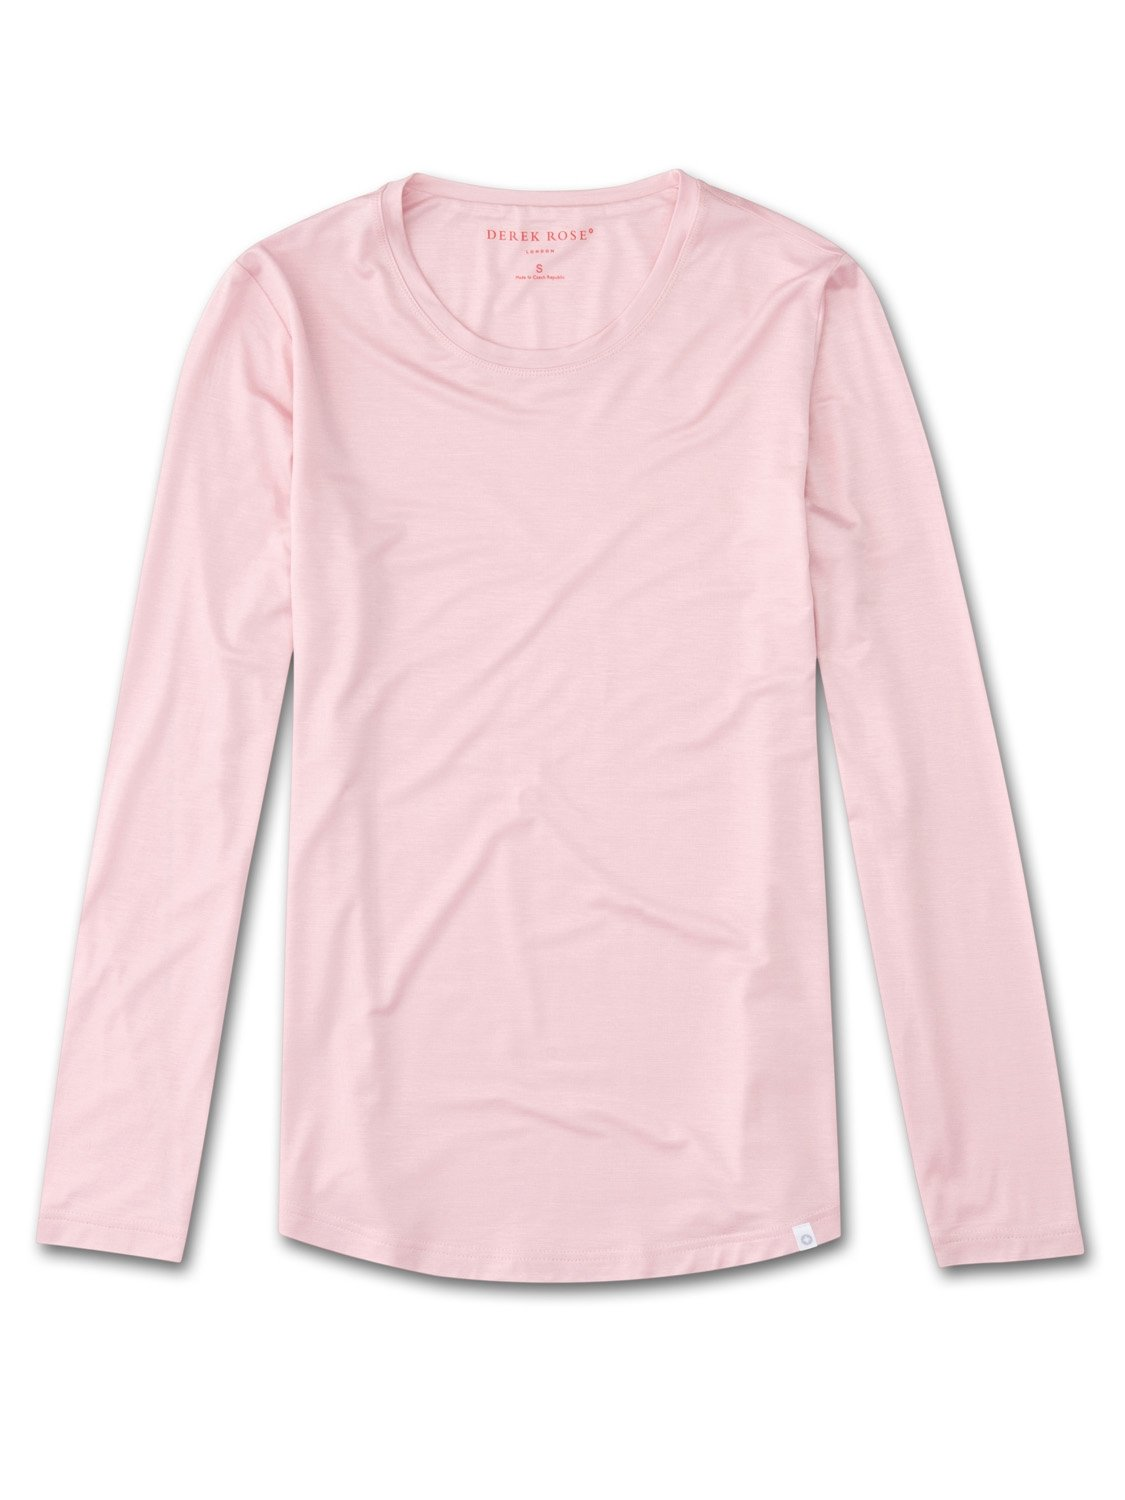 Women's Long Sleeve T-Shirt Carla 3 Micro Modal Stretch Pink